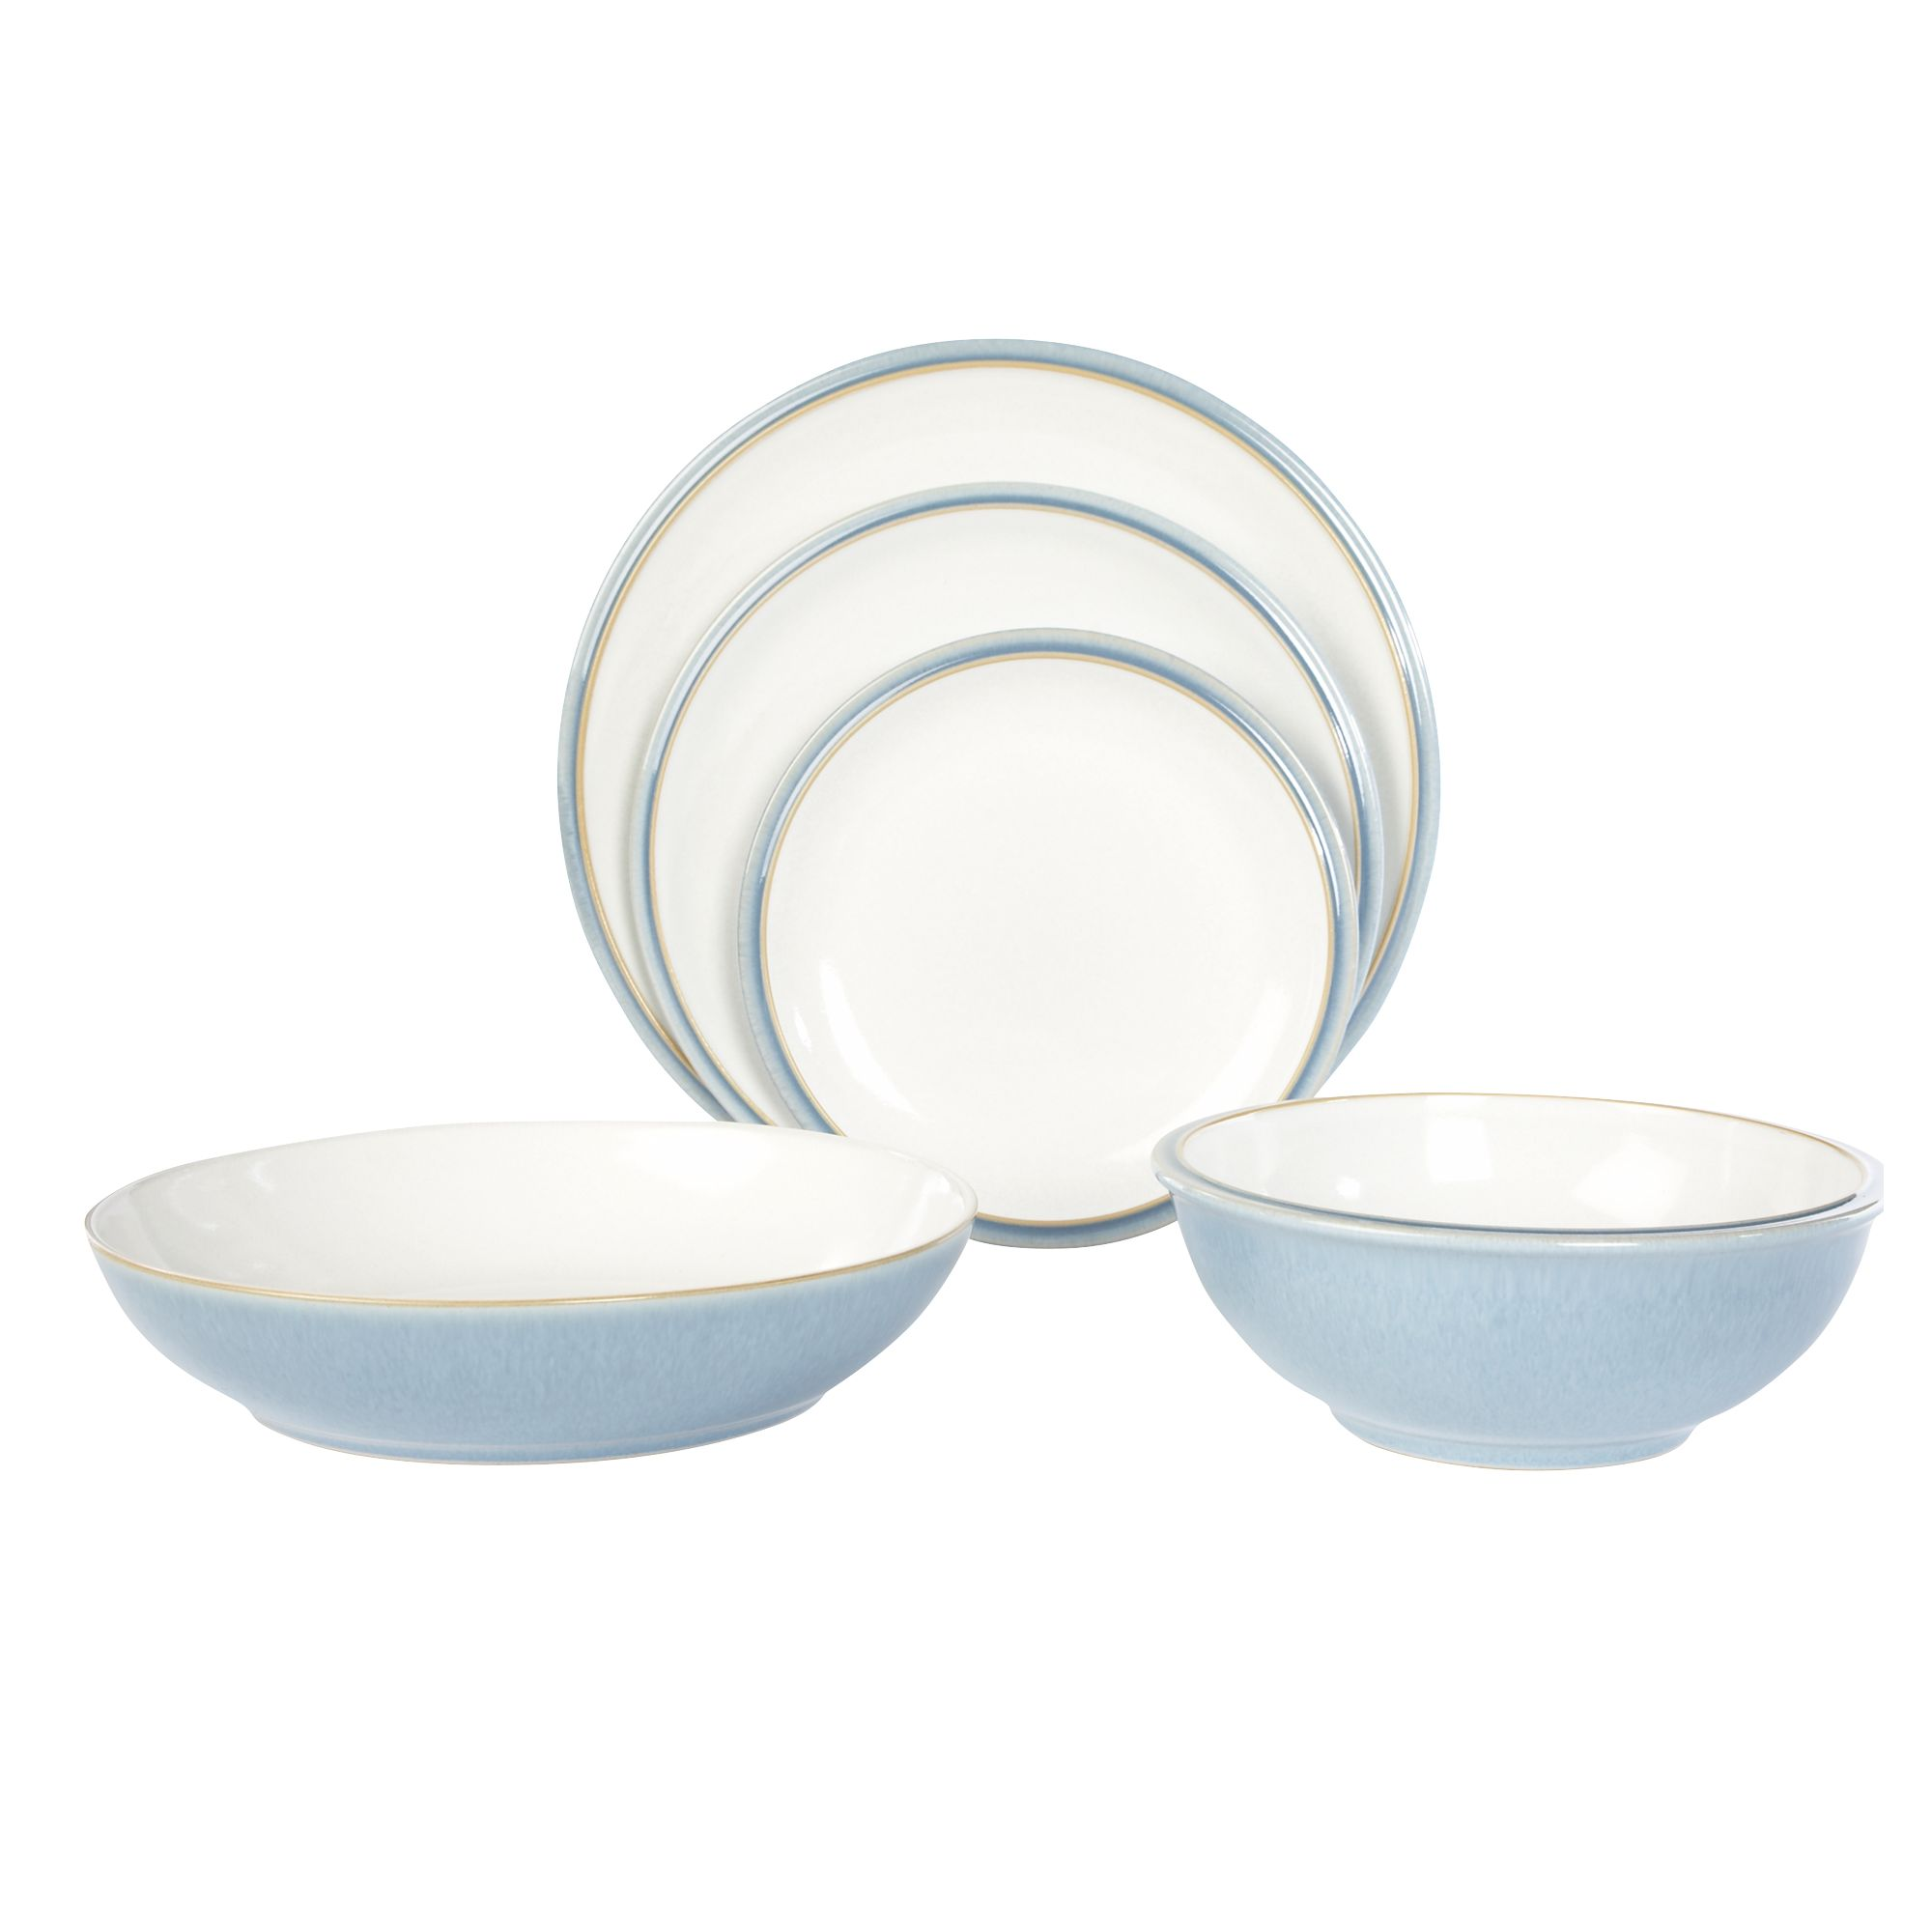 White Jetty Dinnerware in white